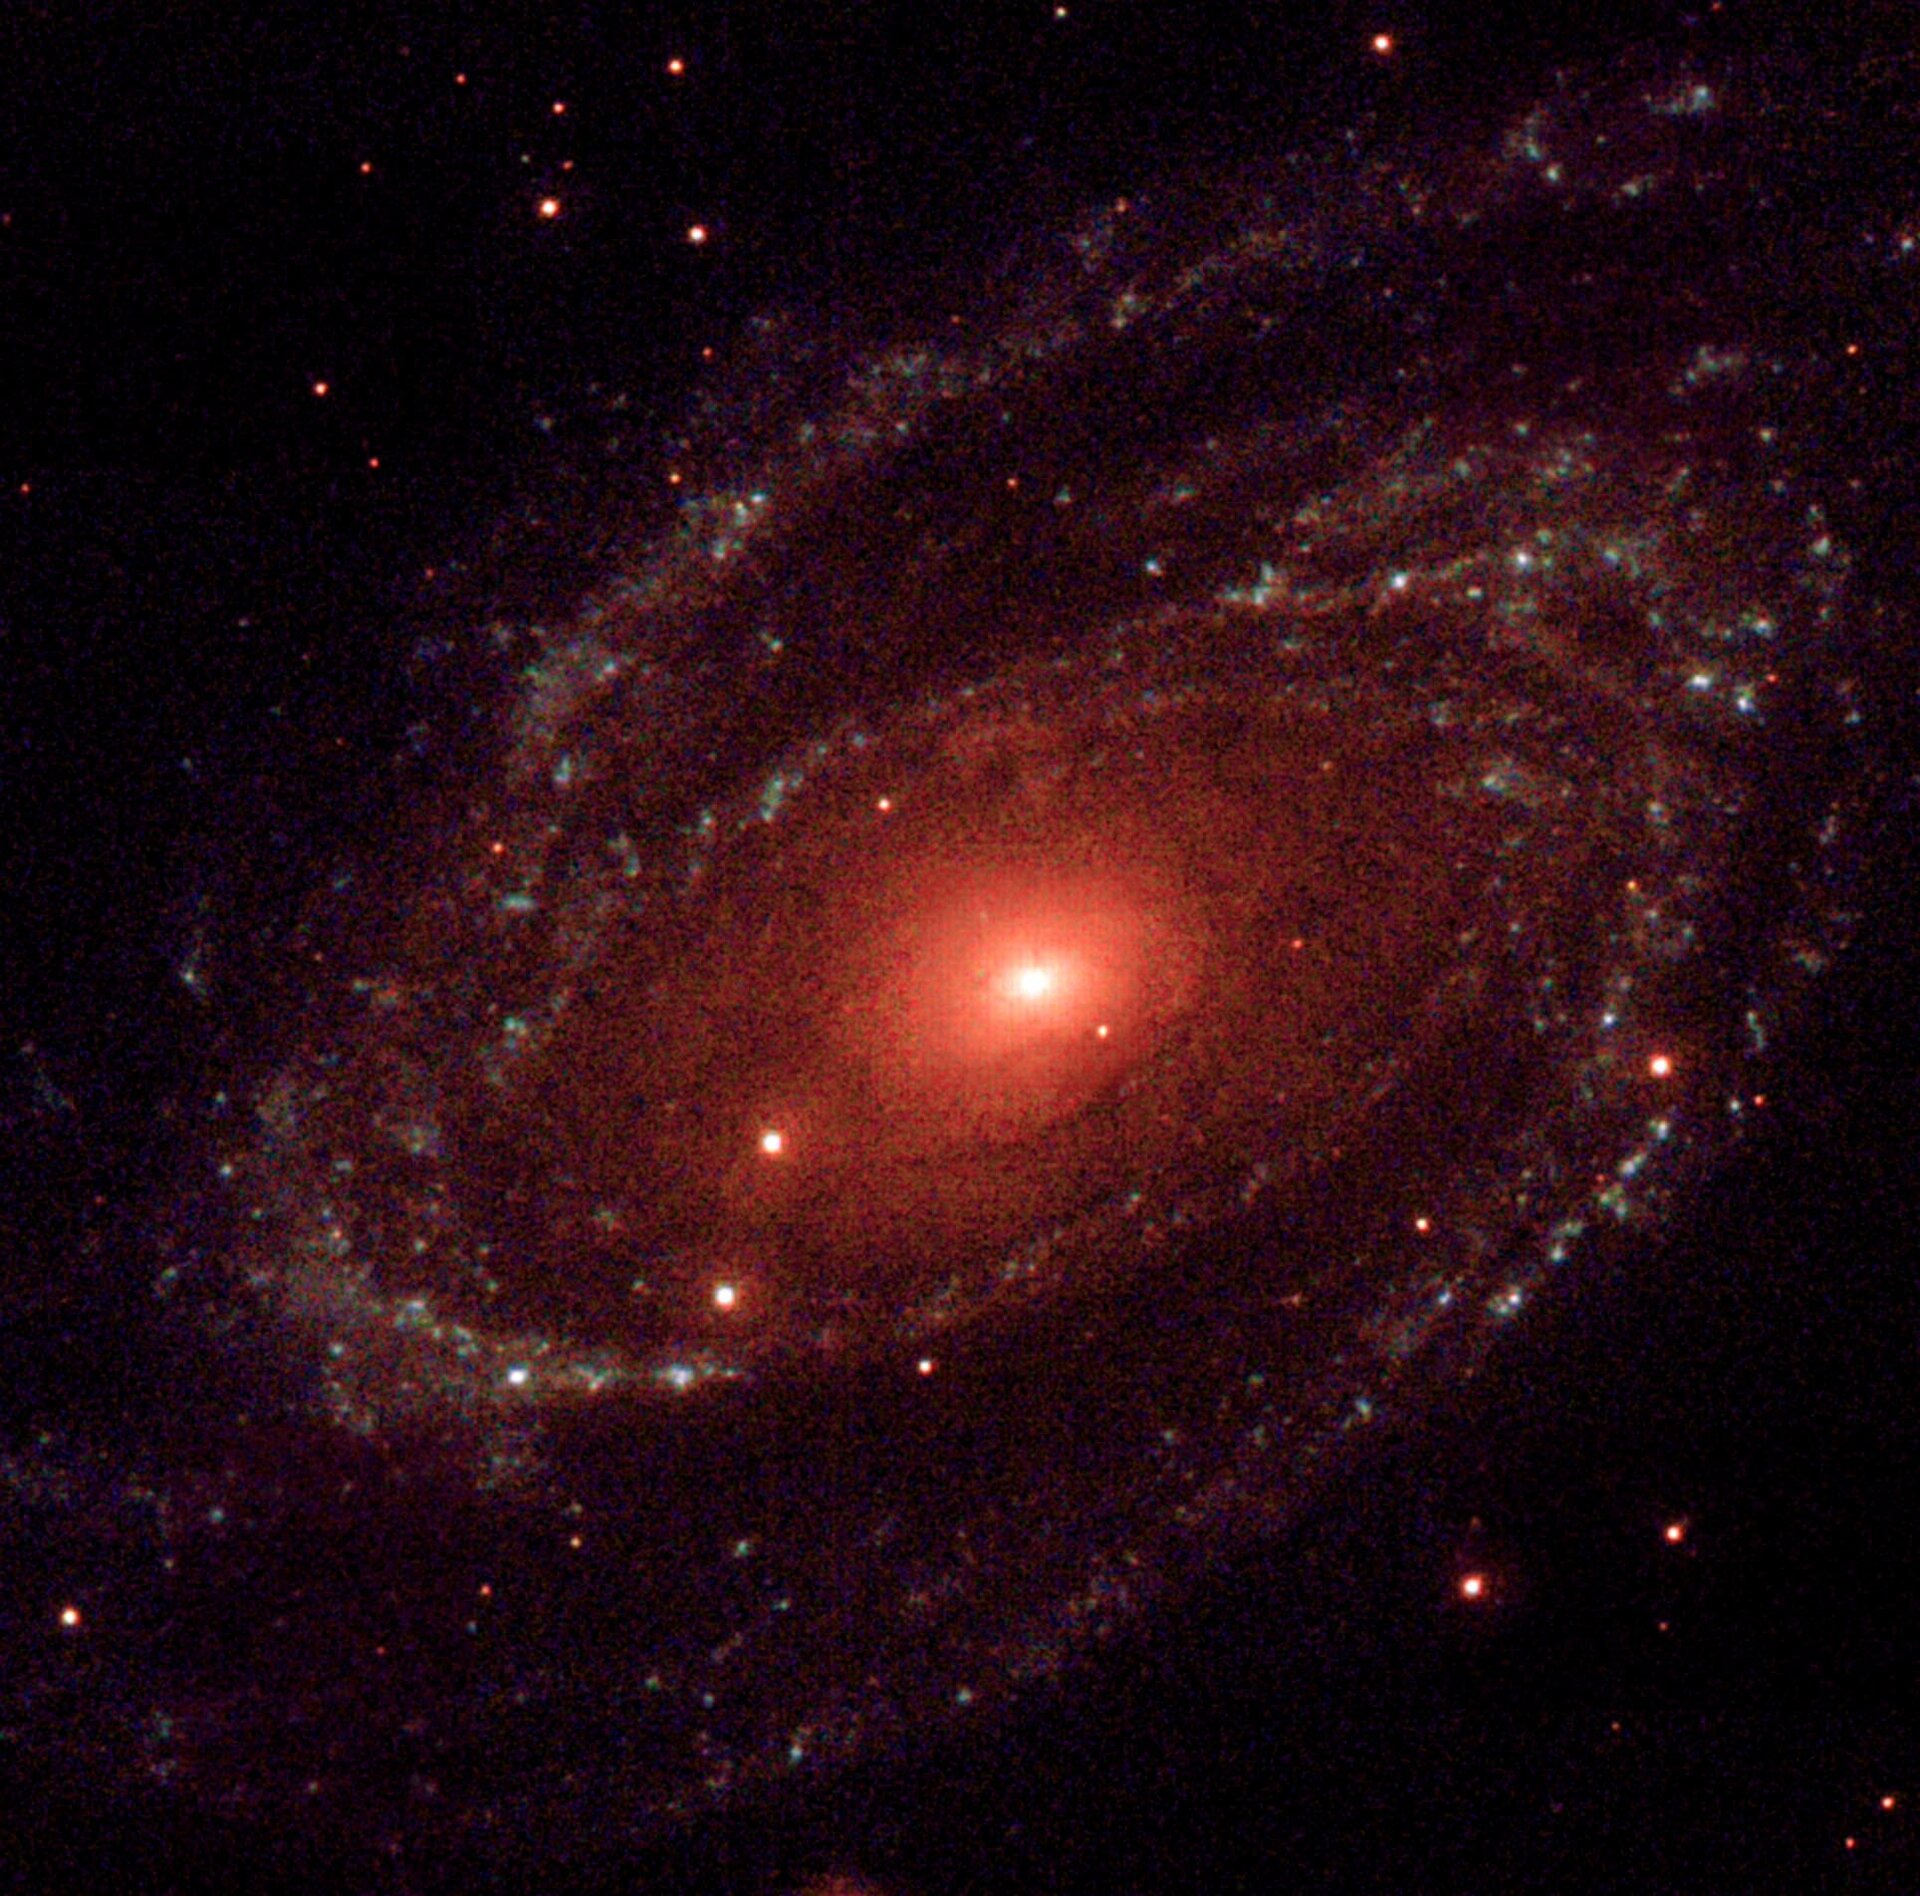 XMM-Newton's Optical Monitor ultraviolet image of the spiral galaxy M81